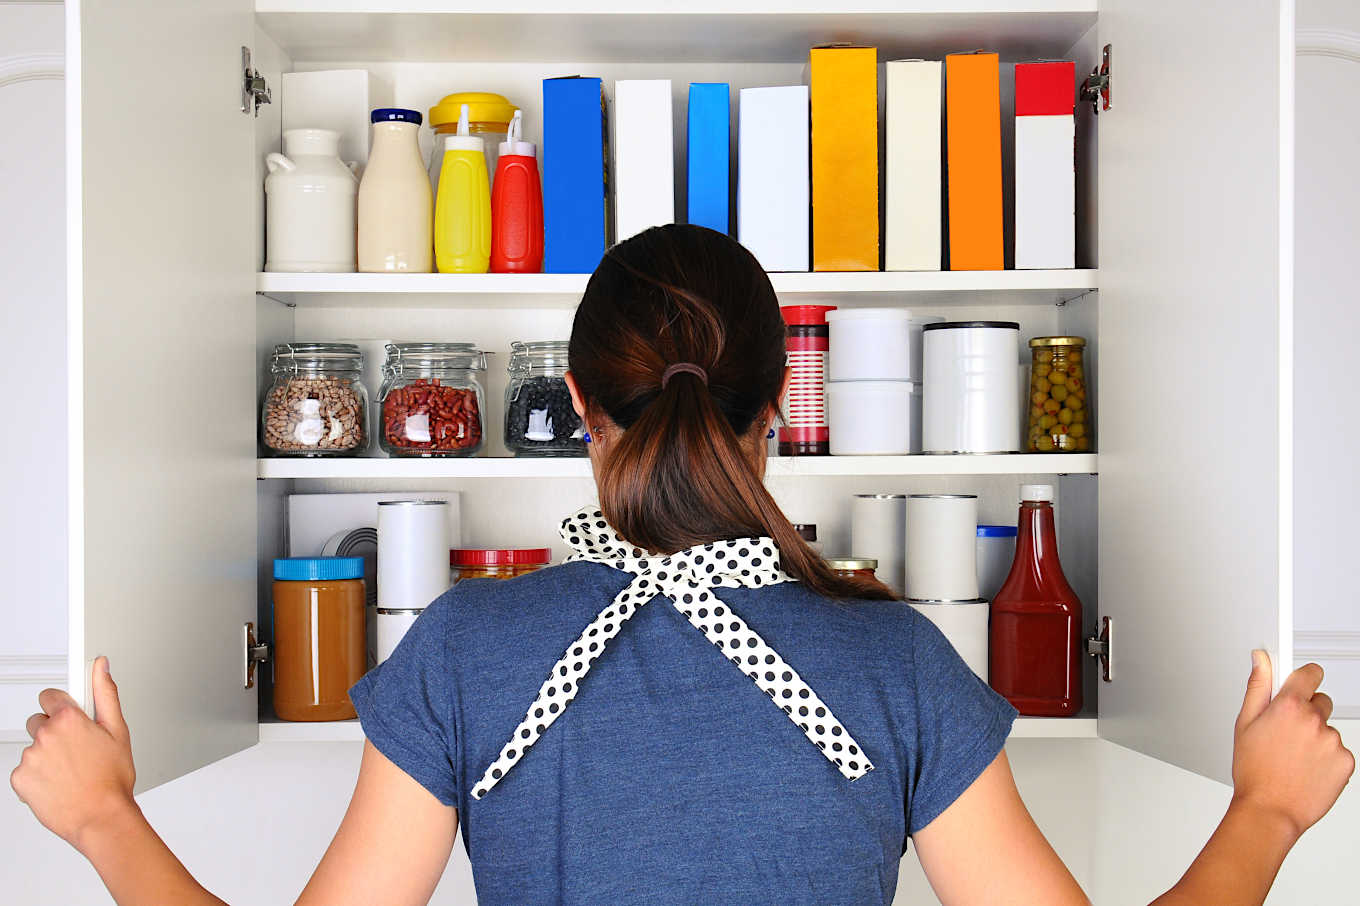 Does Your Pantry Need a Health Sweep? Here are 10 Things to Clear Out of Your Pantry Today